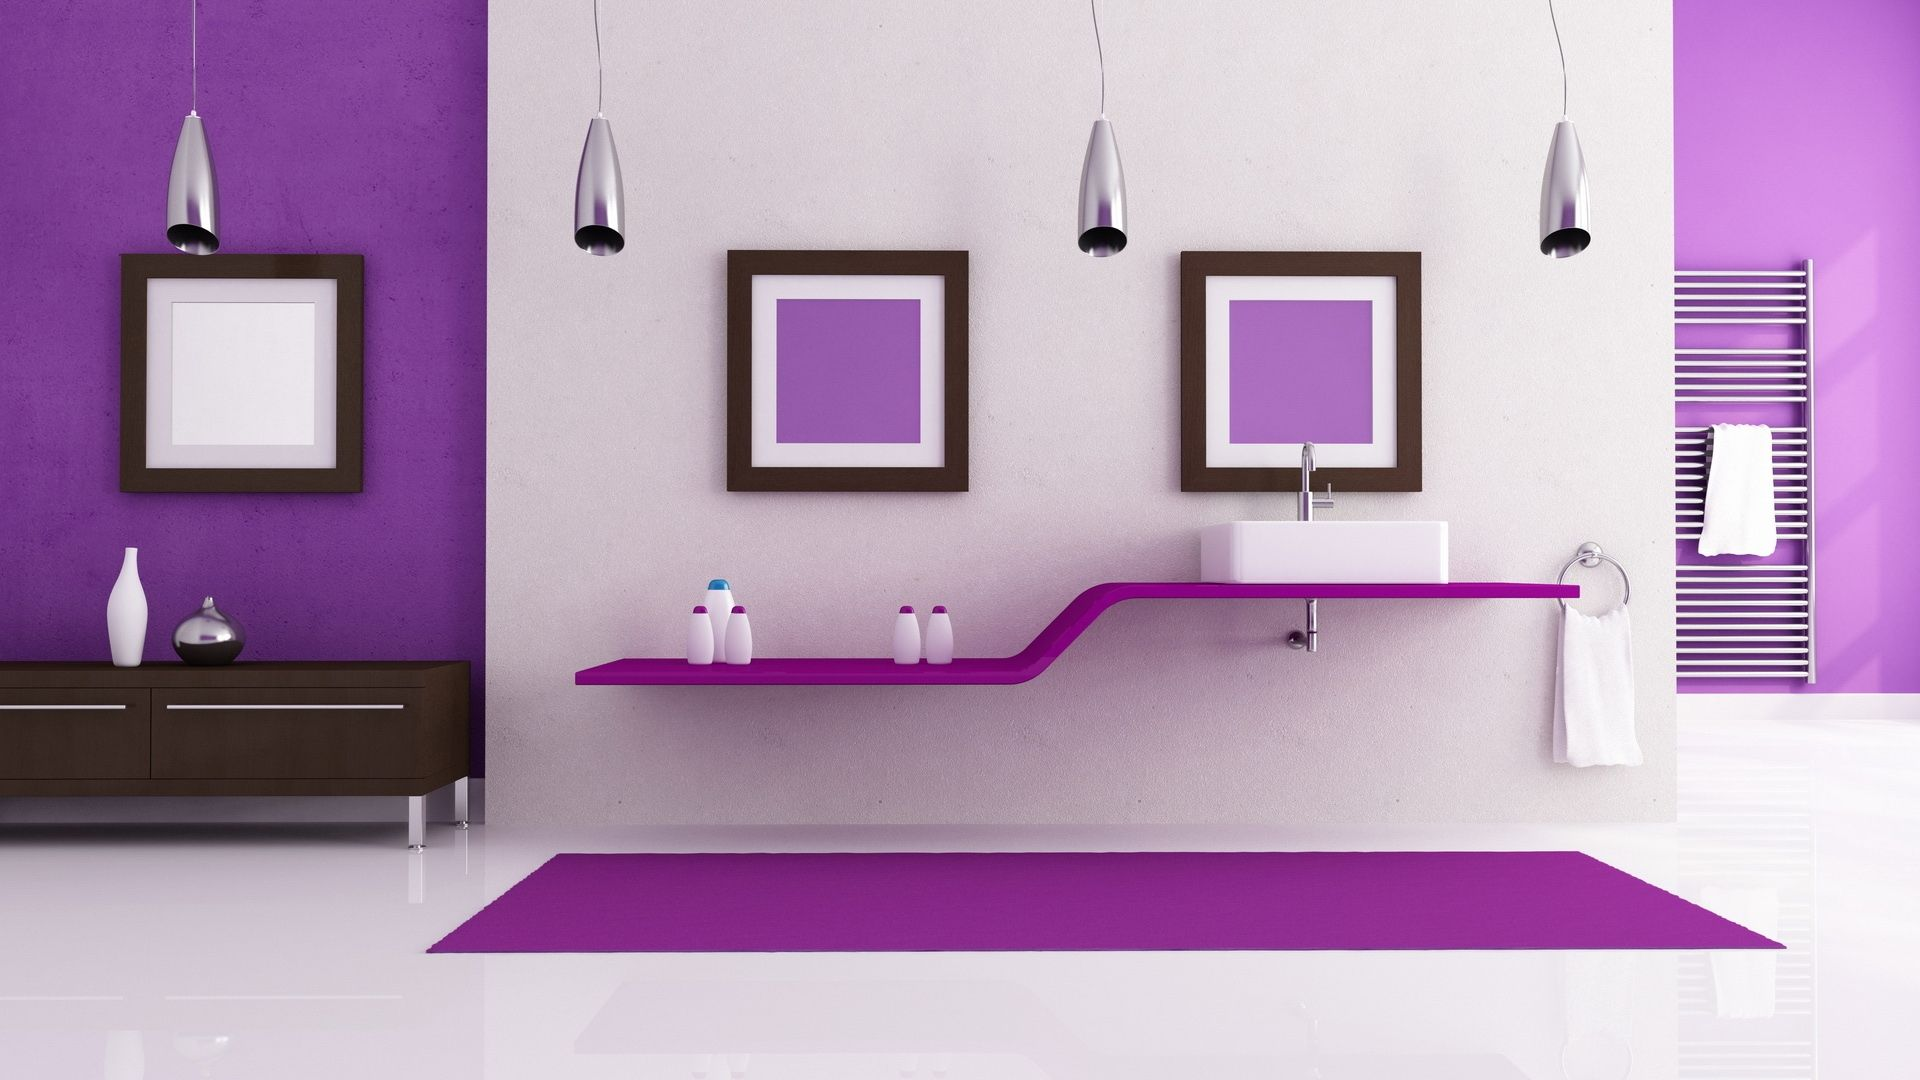 interior-designs-fabulous-fresh-simple-and-calm-interior-designing-with-nice-o-also-interior-designing-as-well-as-violet-interior-designing-with-design-ideas-excellent-interior-designing